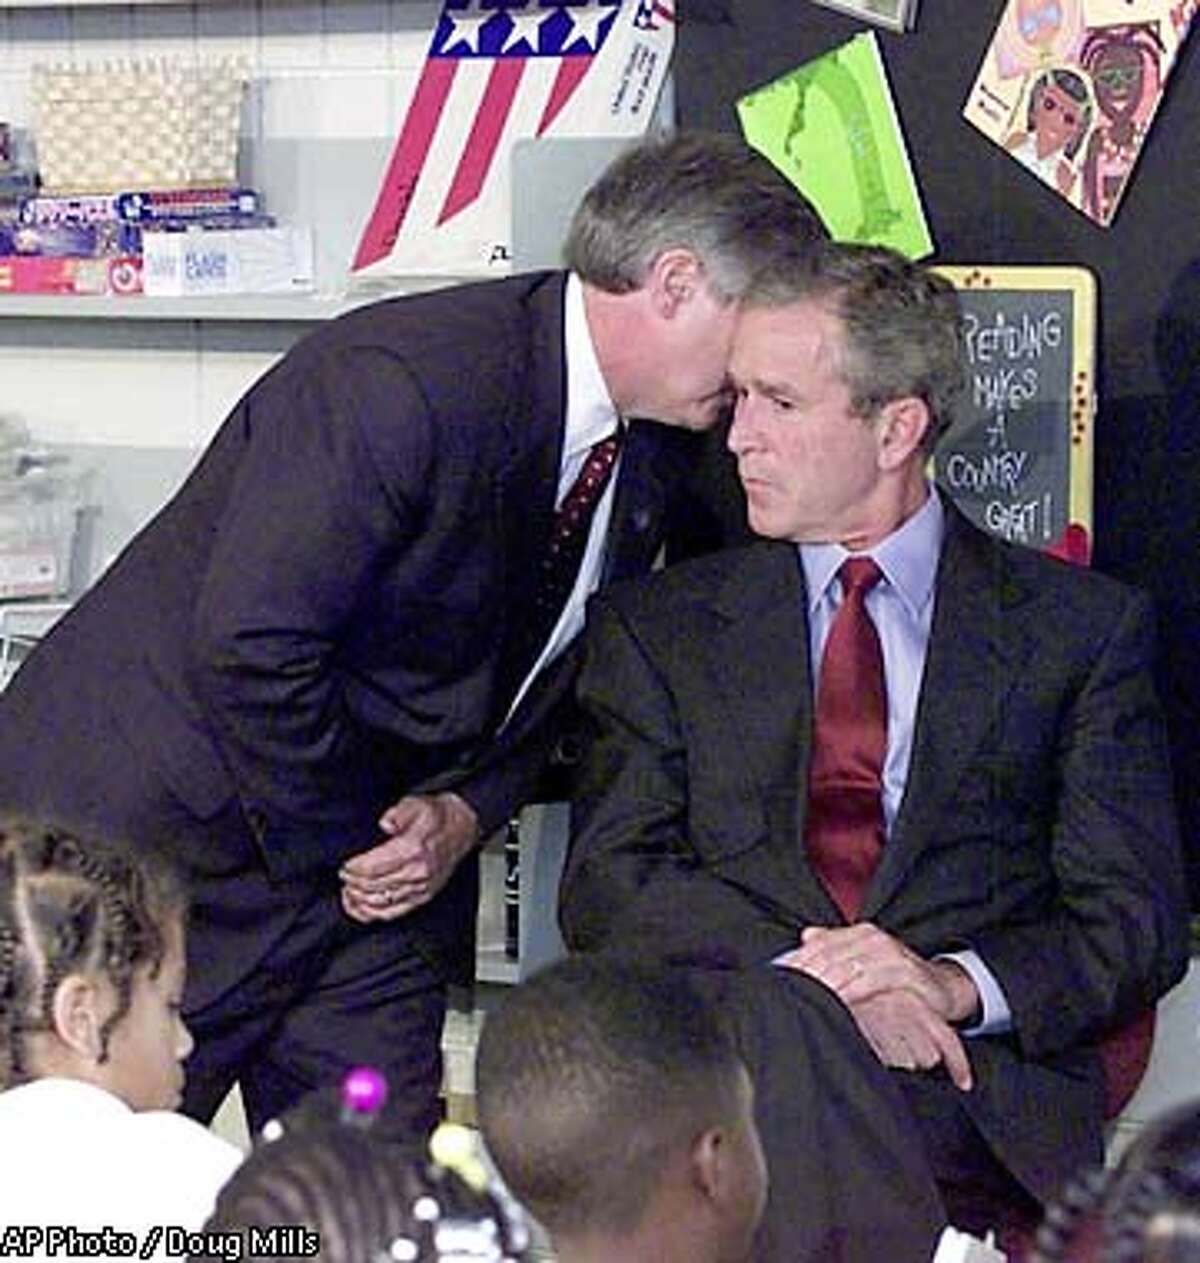 President Bush's Chief of Staff Andy Card whispers into the ear of the President to give him word of the plane crashes into the World Trade Center, during a visit to the Emma E. Booker Elementary School in Sarasota, Fla., Tuesday, Sept. 11, 2001. (AP Photo/Doug Mills) .. ALSO RAN 09/23/2001, SPECIAL SECTION